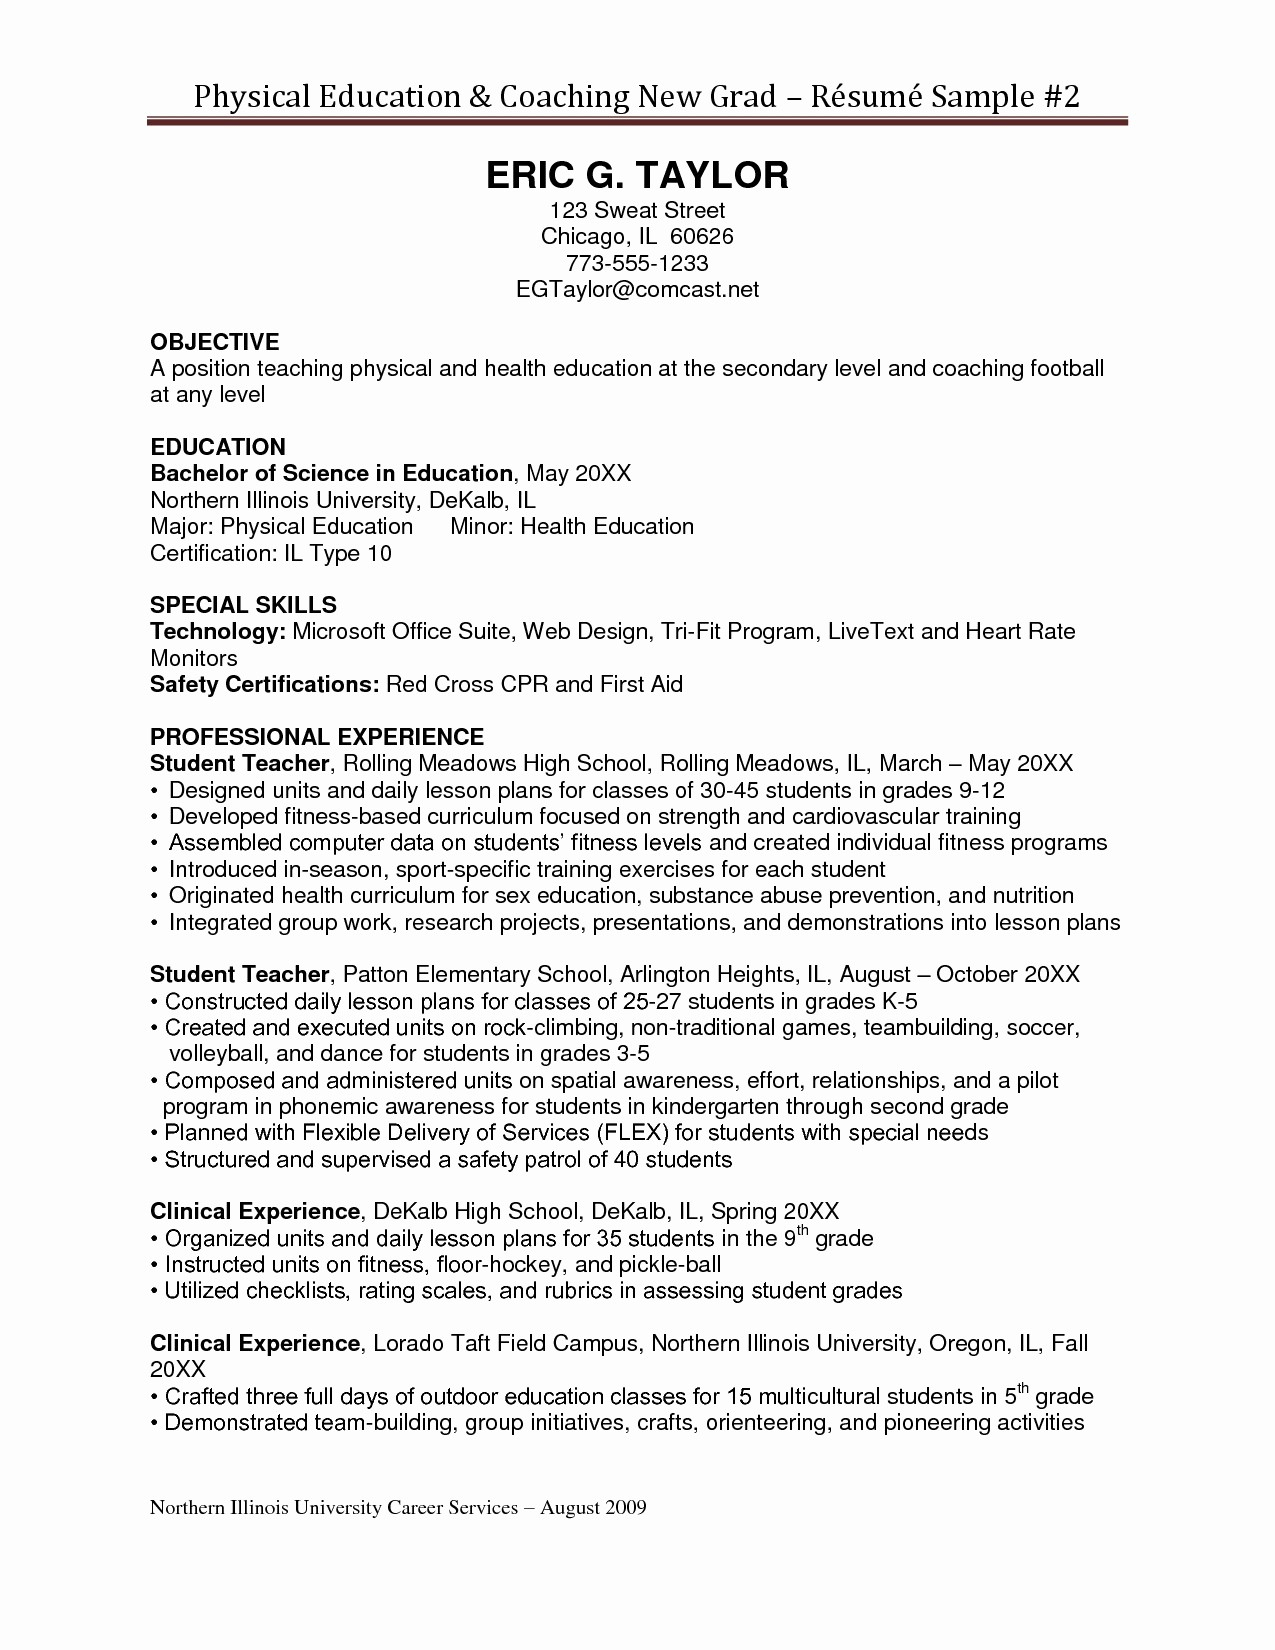 Soccer Resume Template for College - Hockey Resume Template Save soccer Coach Resume Sample New Coaching